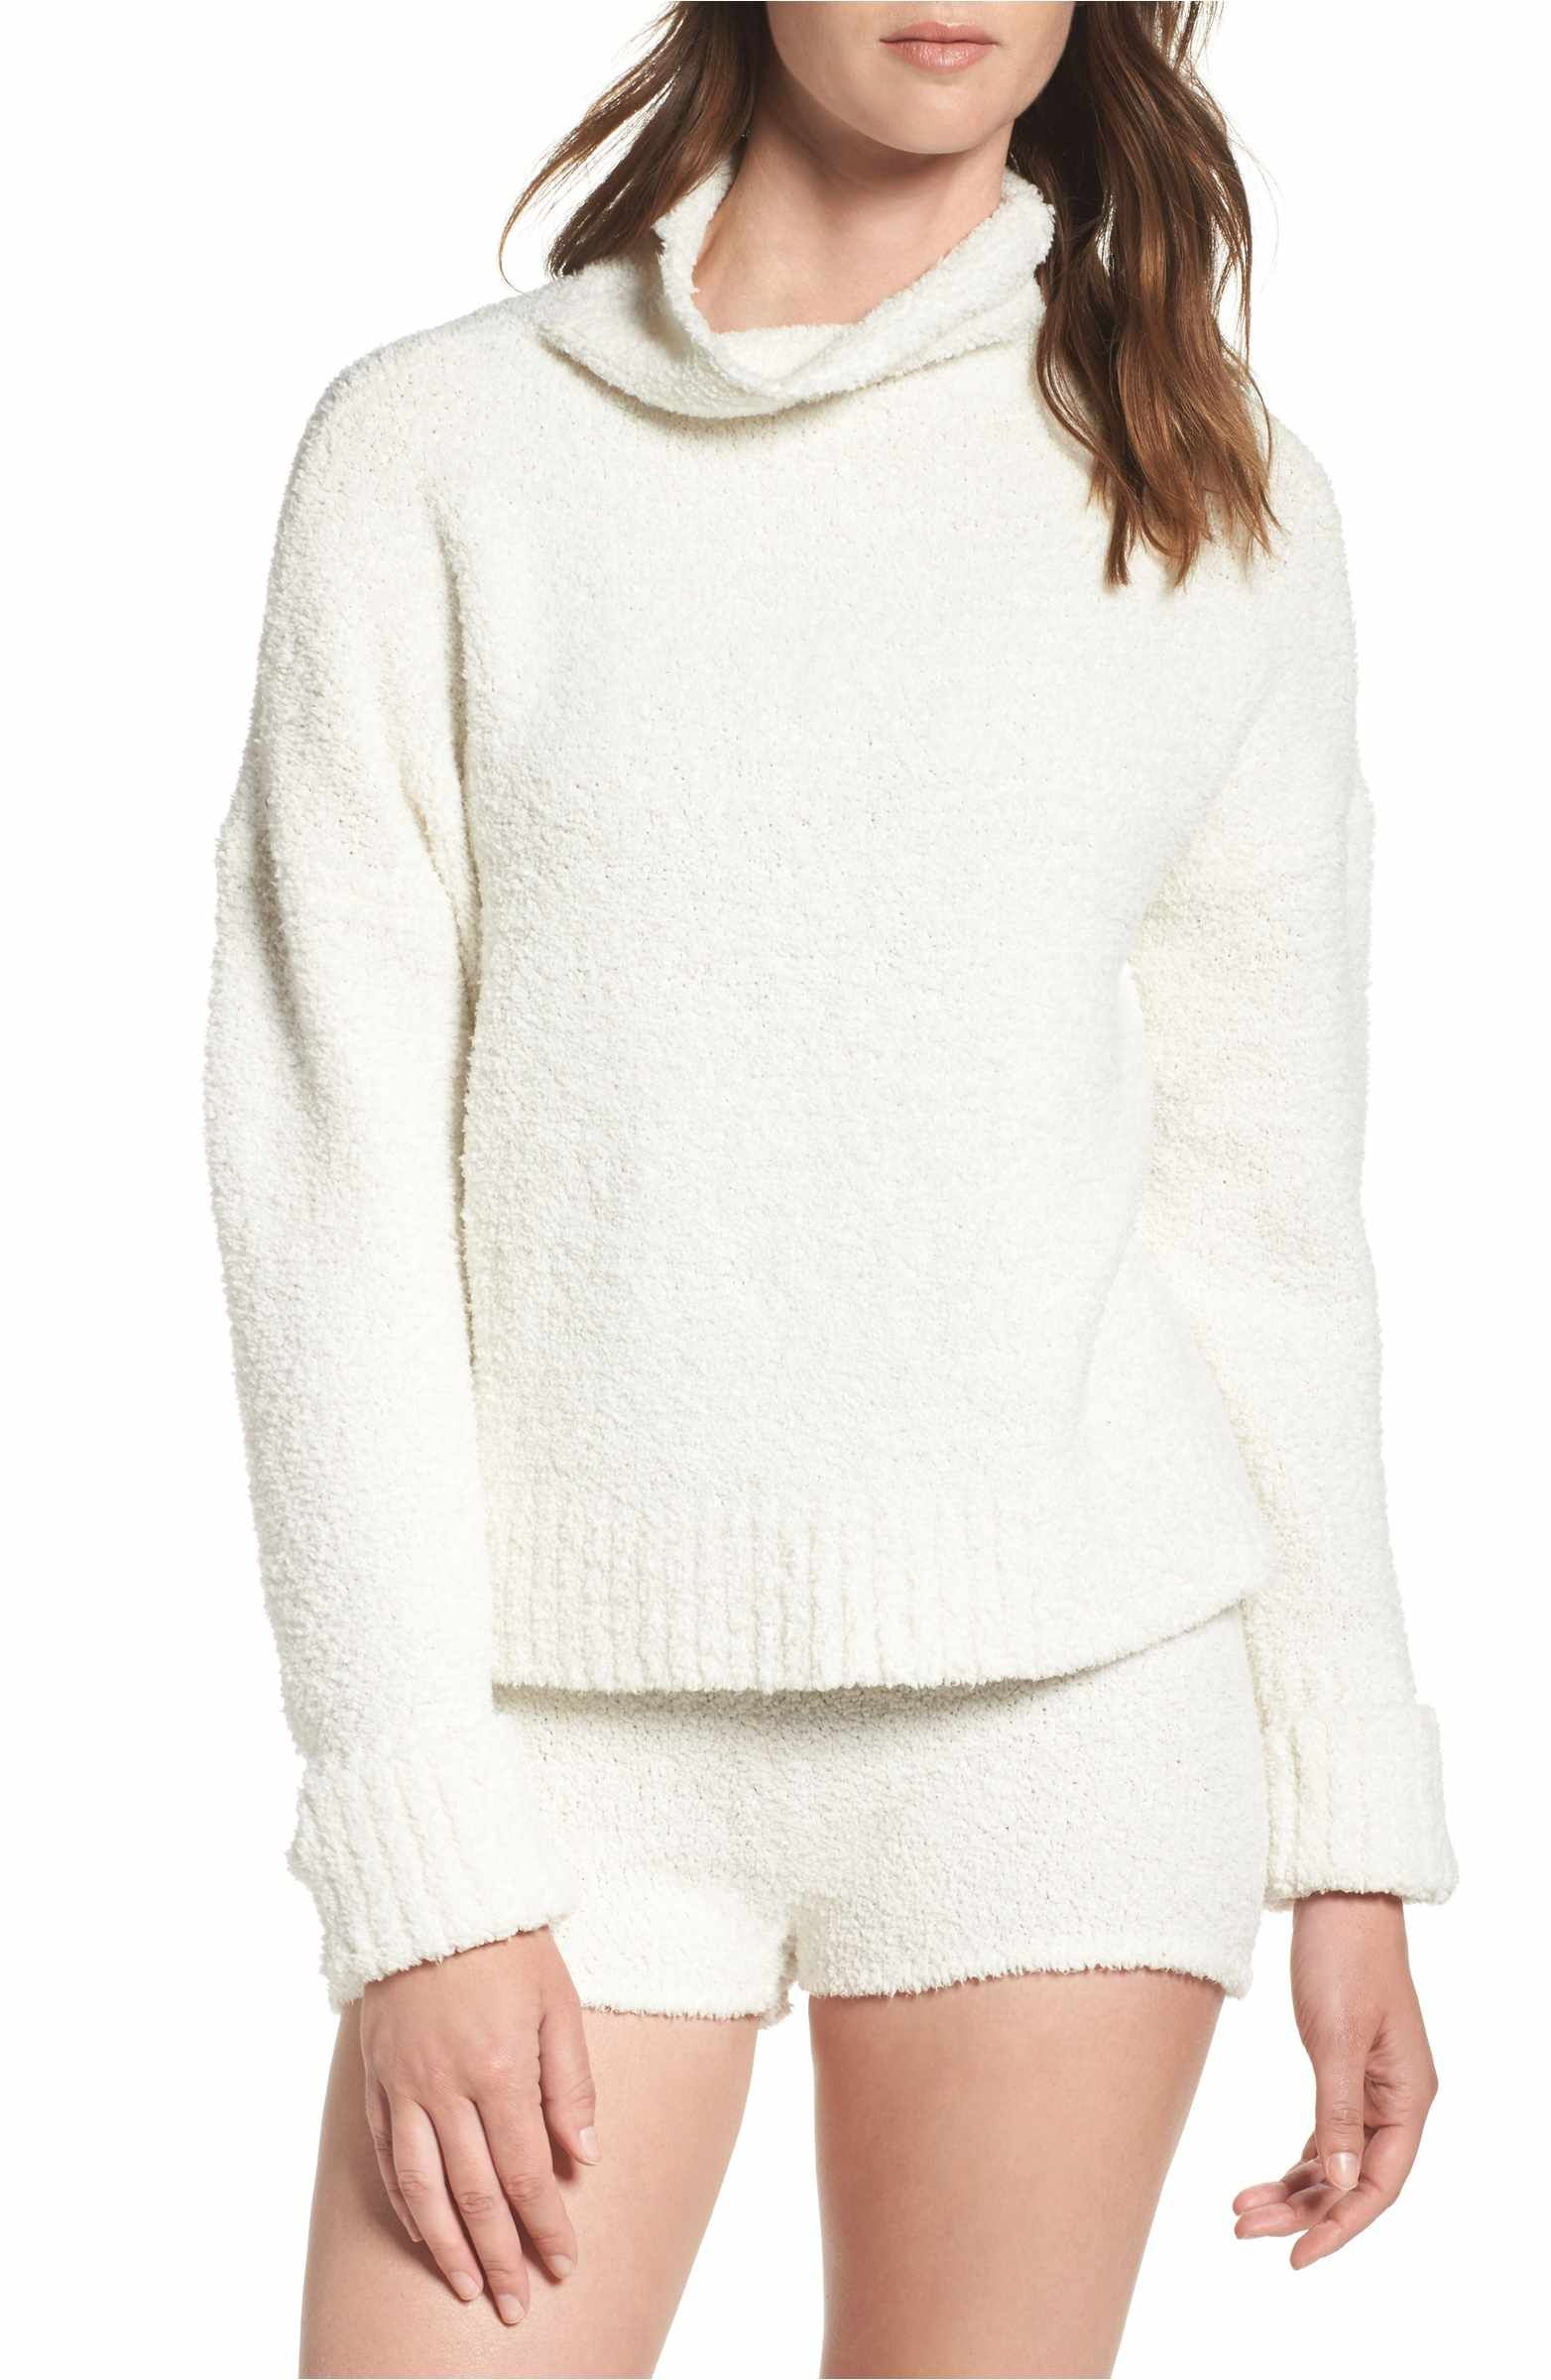 UGG® Sweater Knit Pajama Shorts Pullover, Cowl neck, Fashion